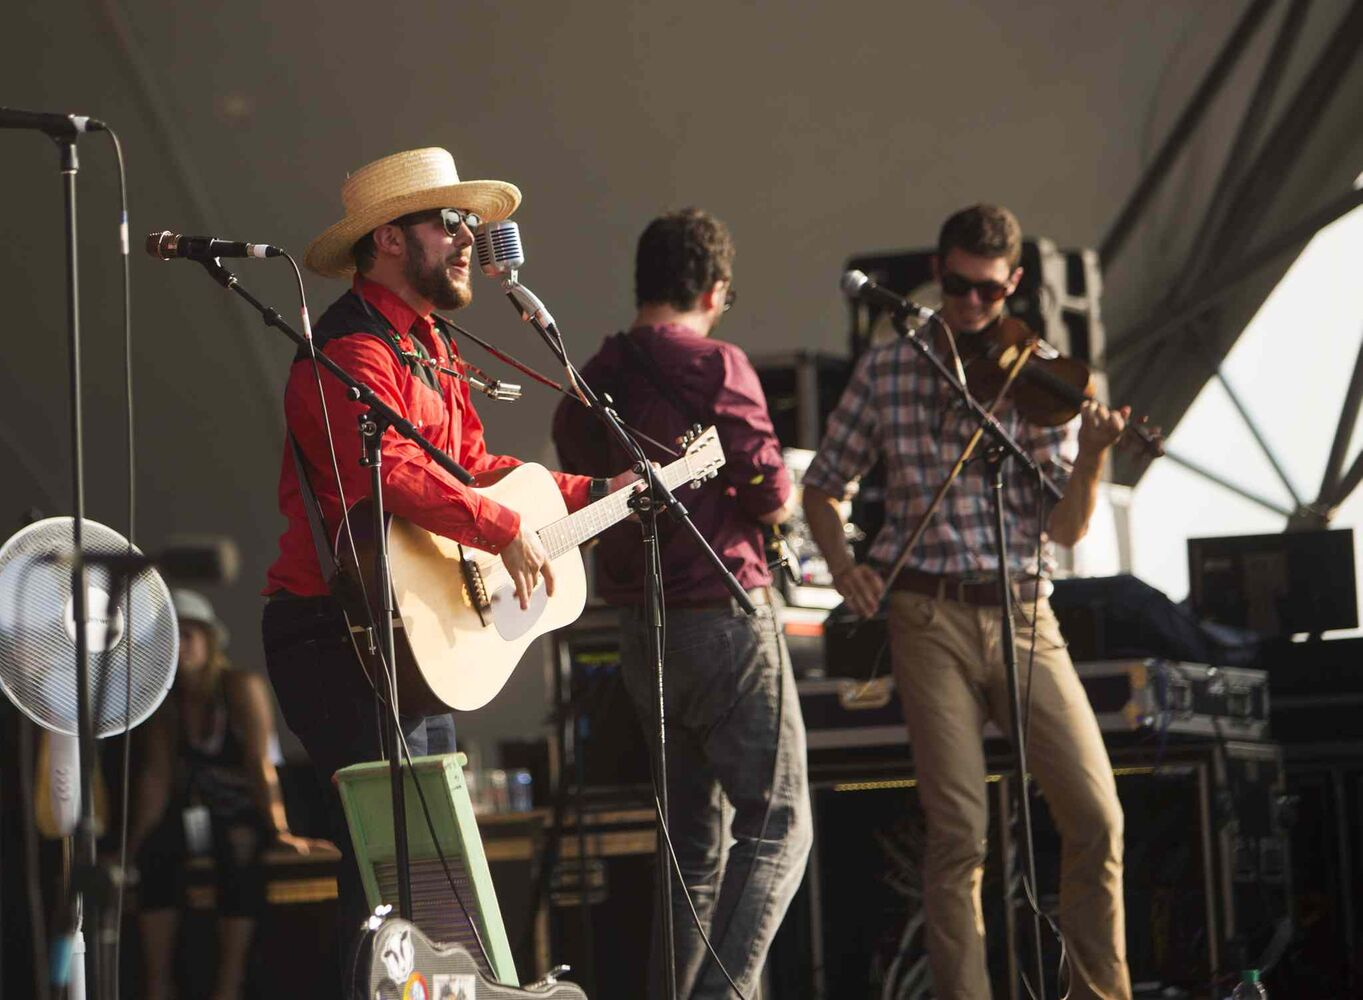 Dustbowl Revival plays at the Winnipeg Folk Festival in Birds Hill Park on Friday, July 10, 2015.   Mikaela MacKenzie / Winnipeg Free Press (Winnipeg Free Press)